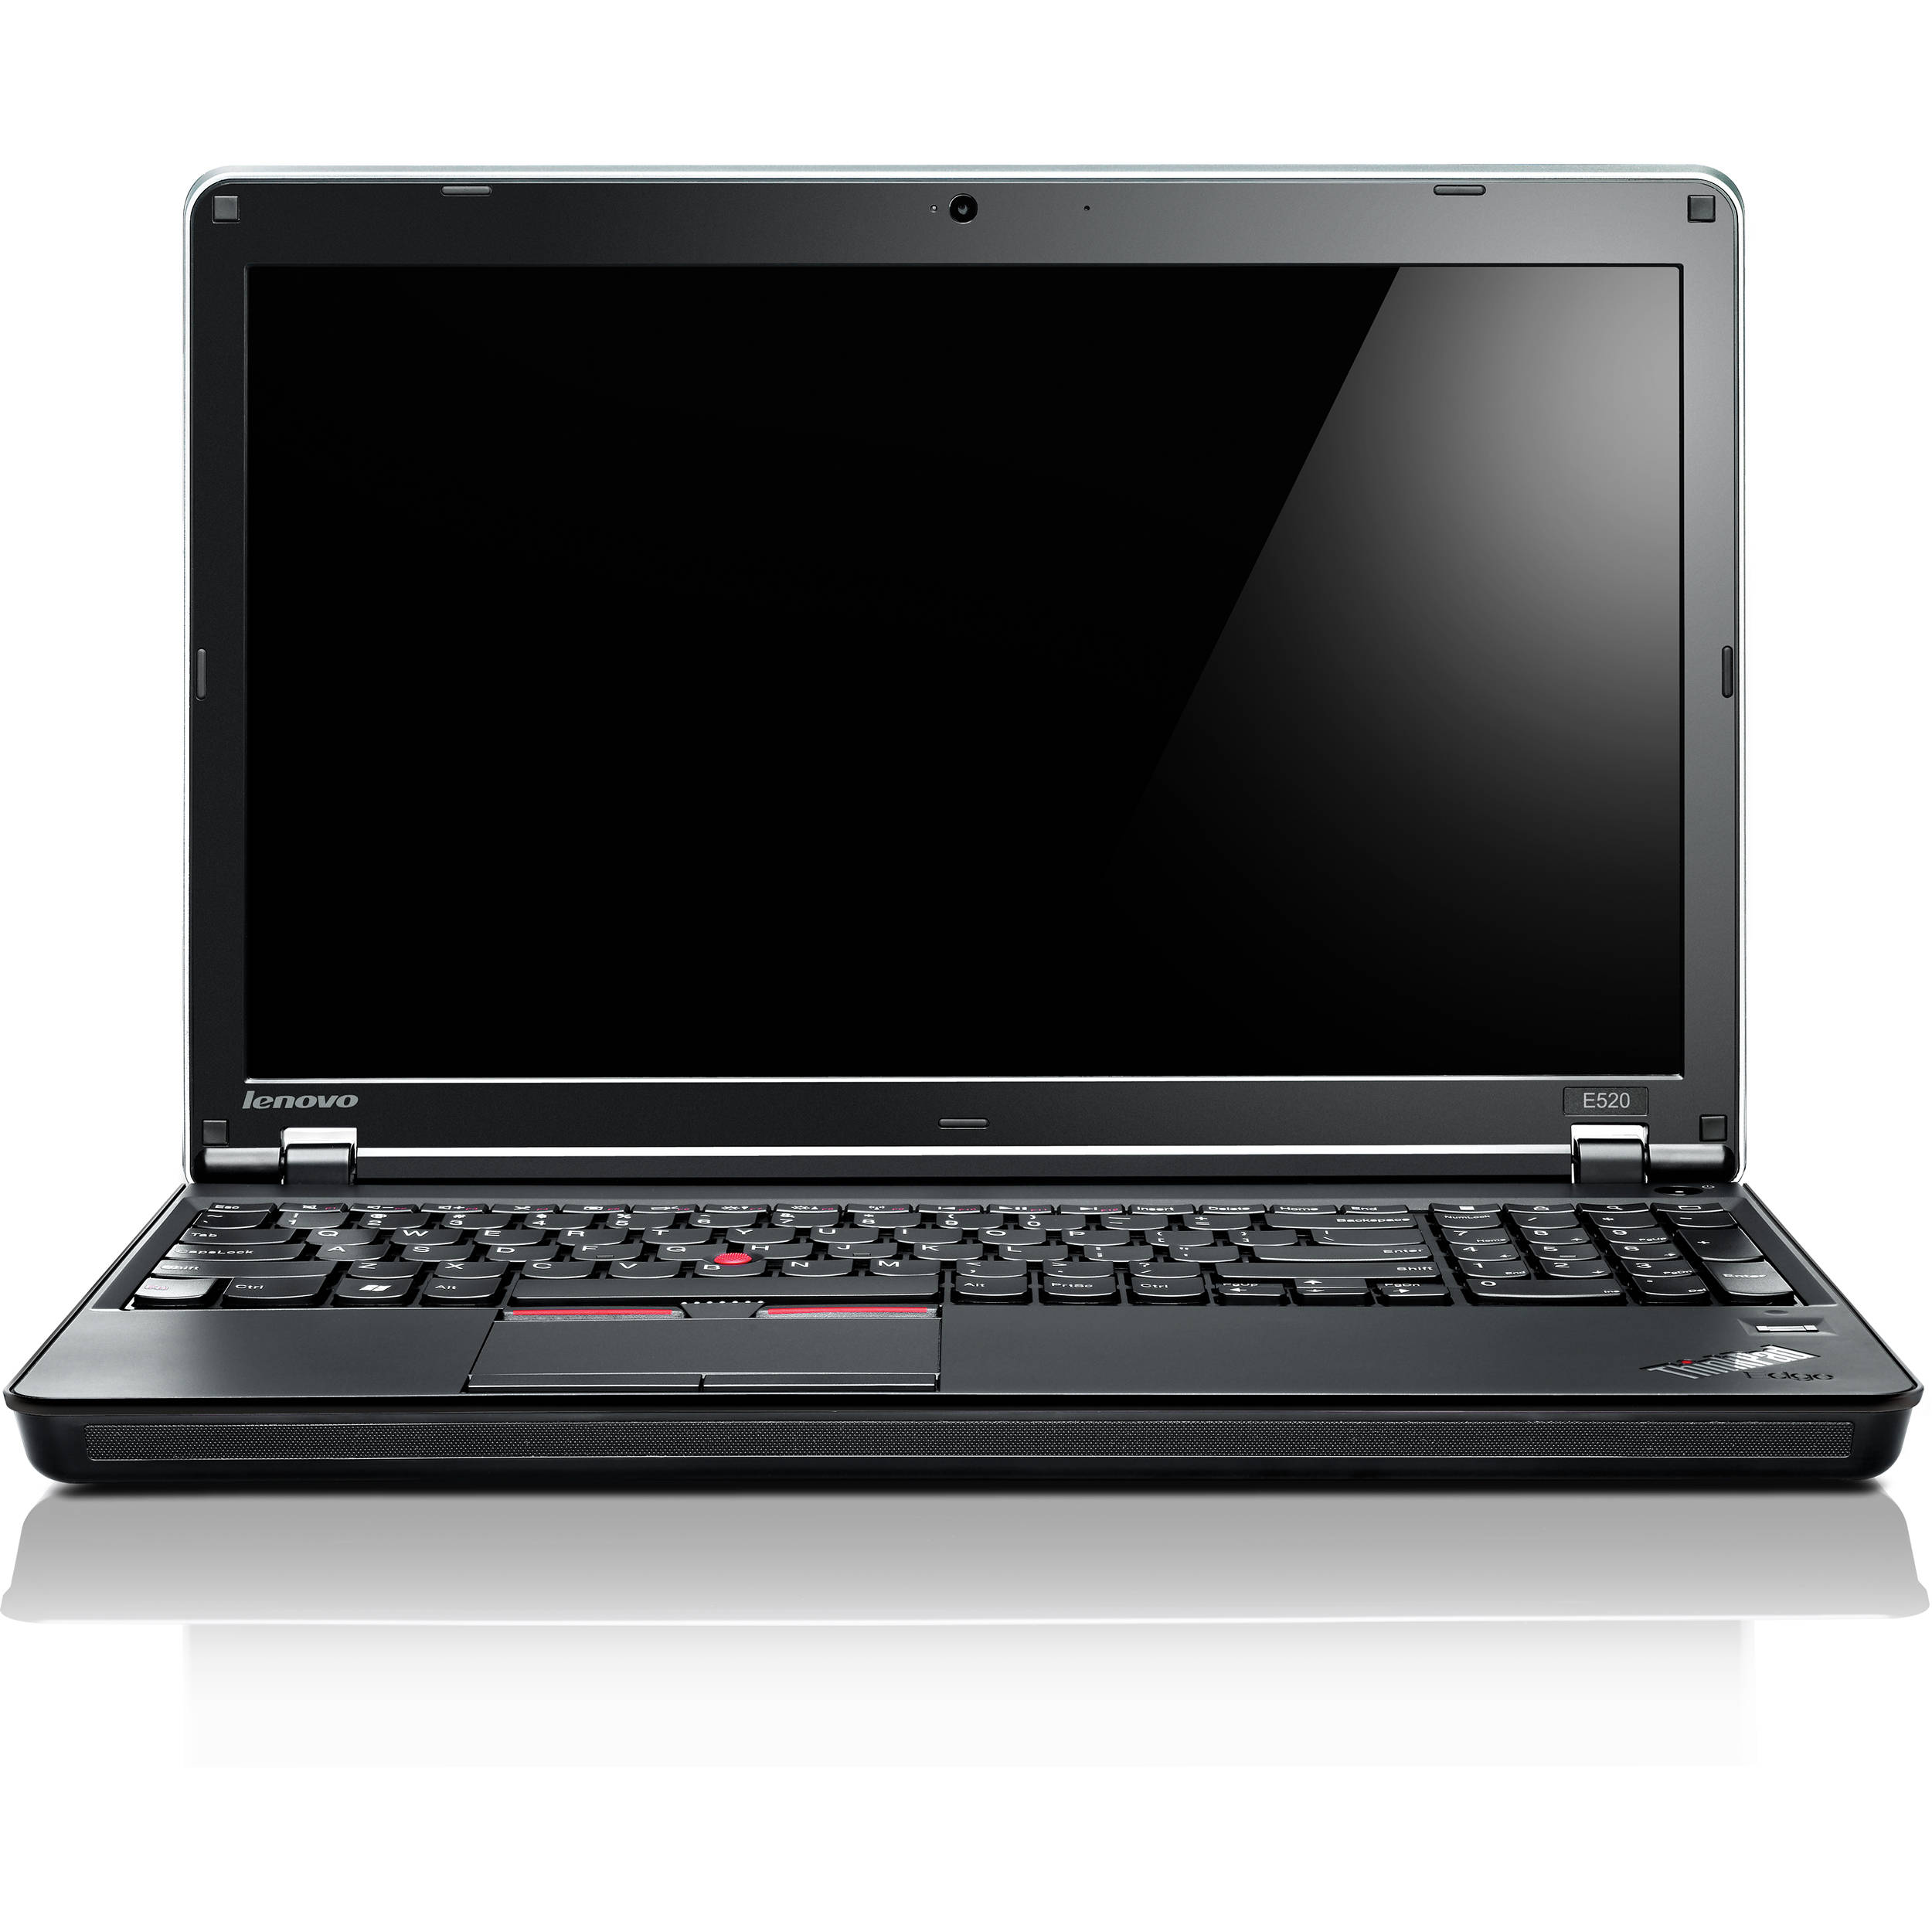 LENOVO THINKPAD EDGE E520 POWER MANAGER DRIVER FREE